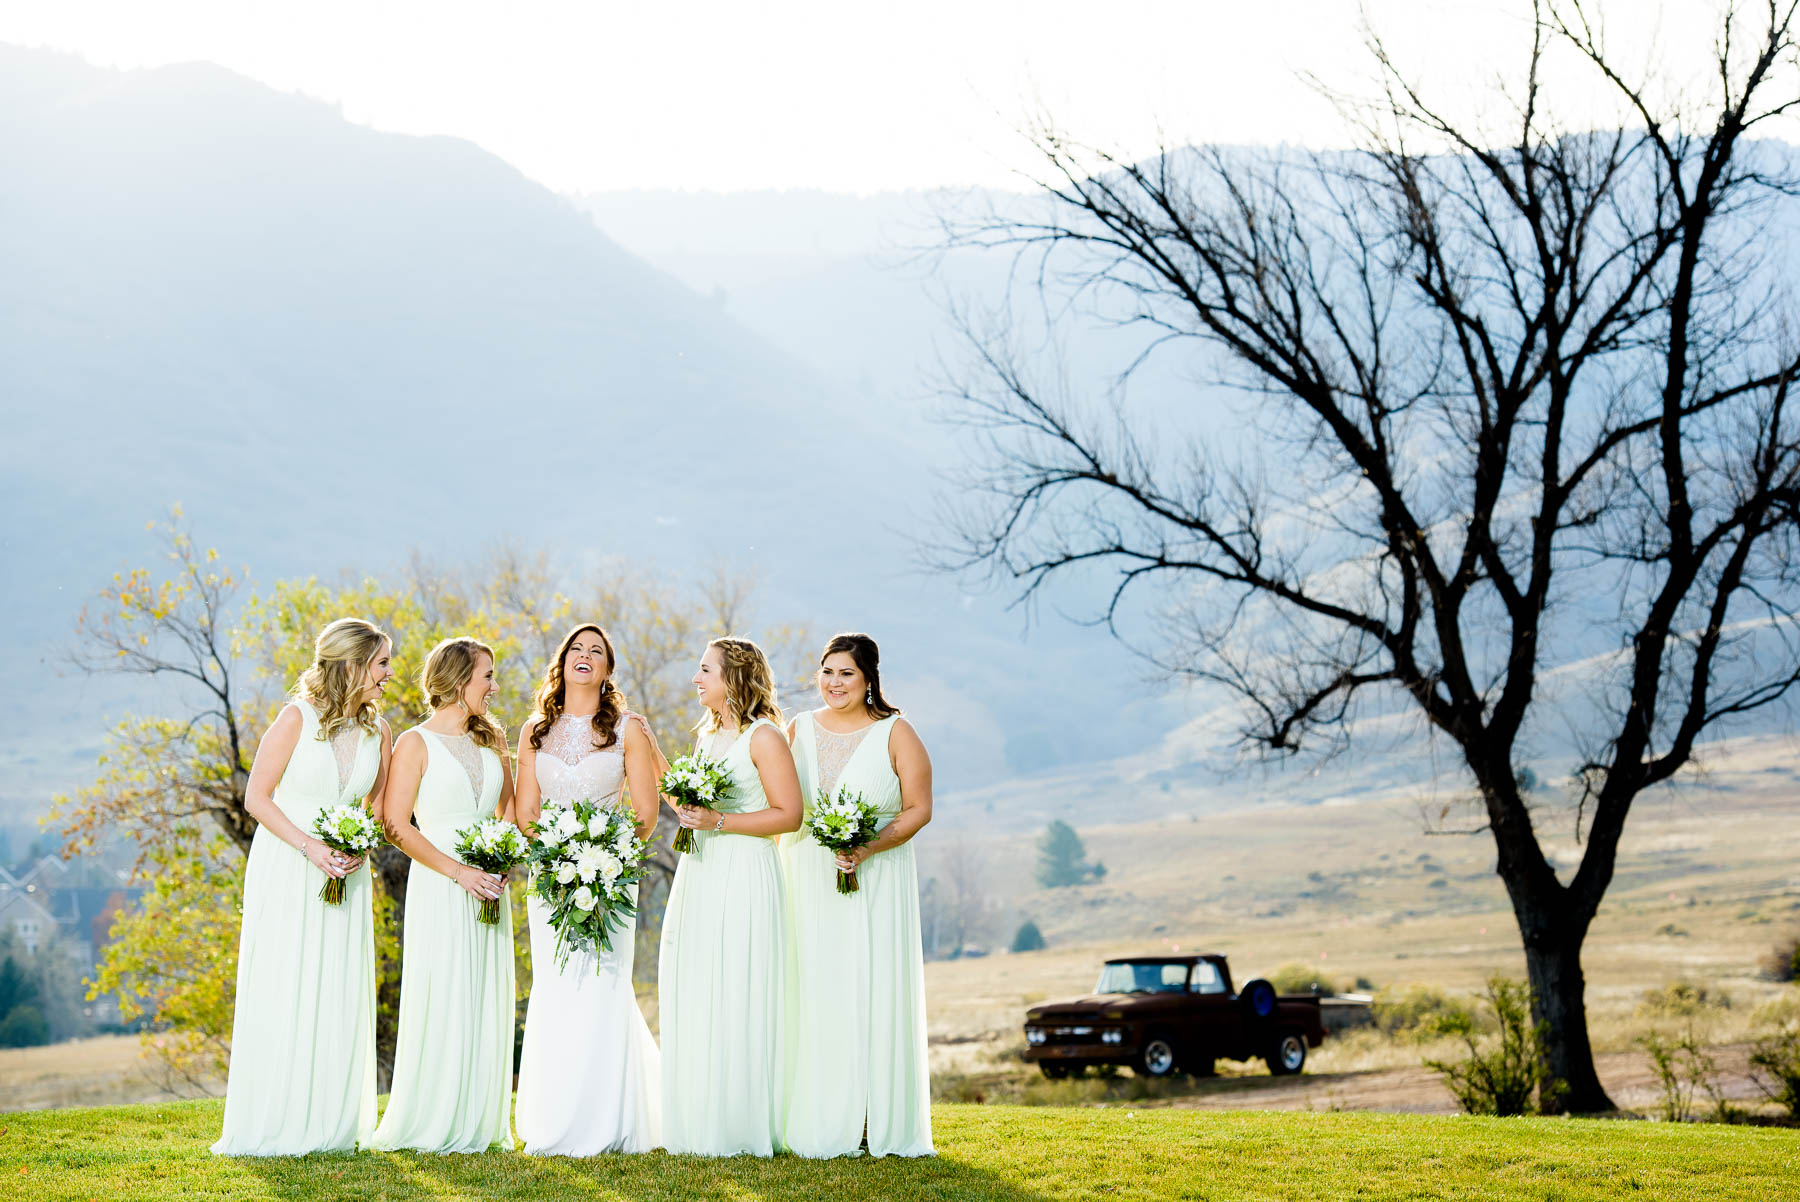 Bride and bridesmaids laugh together during a wedding at the Manor House in Littleton, Colorado.